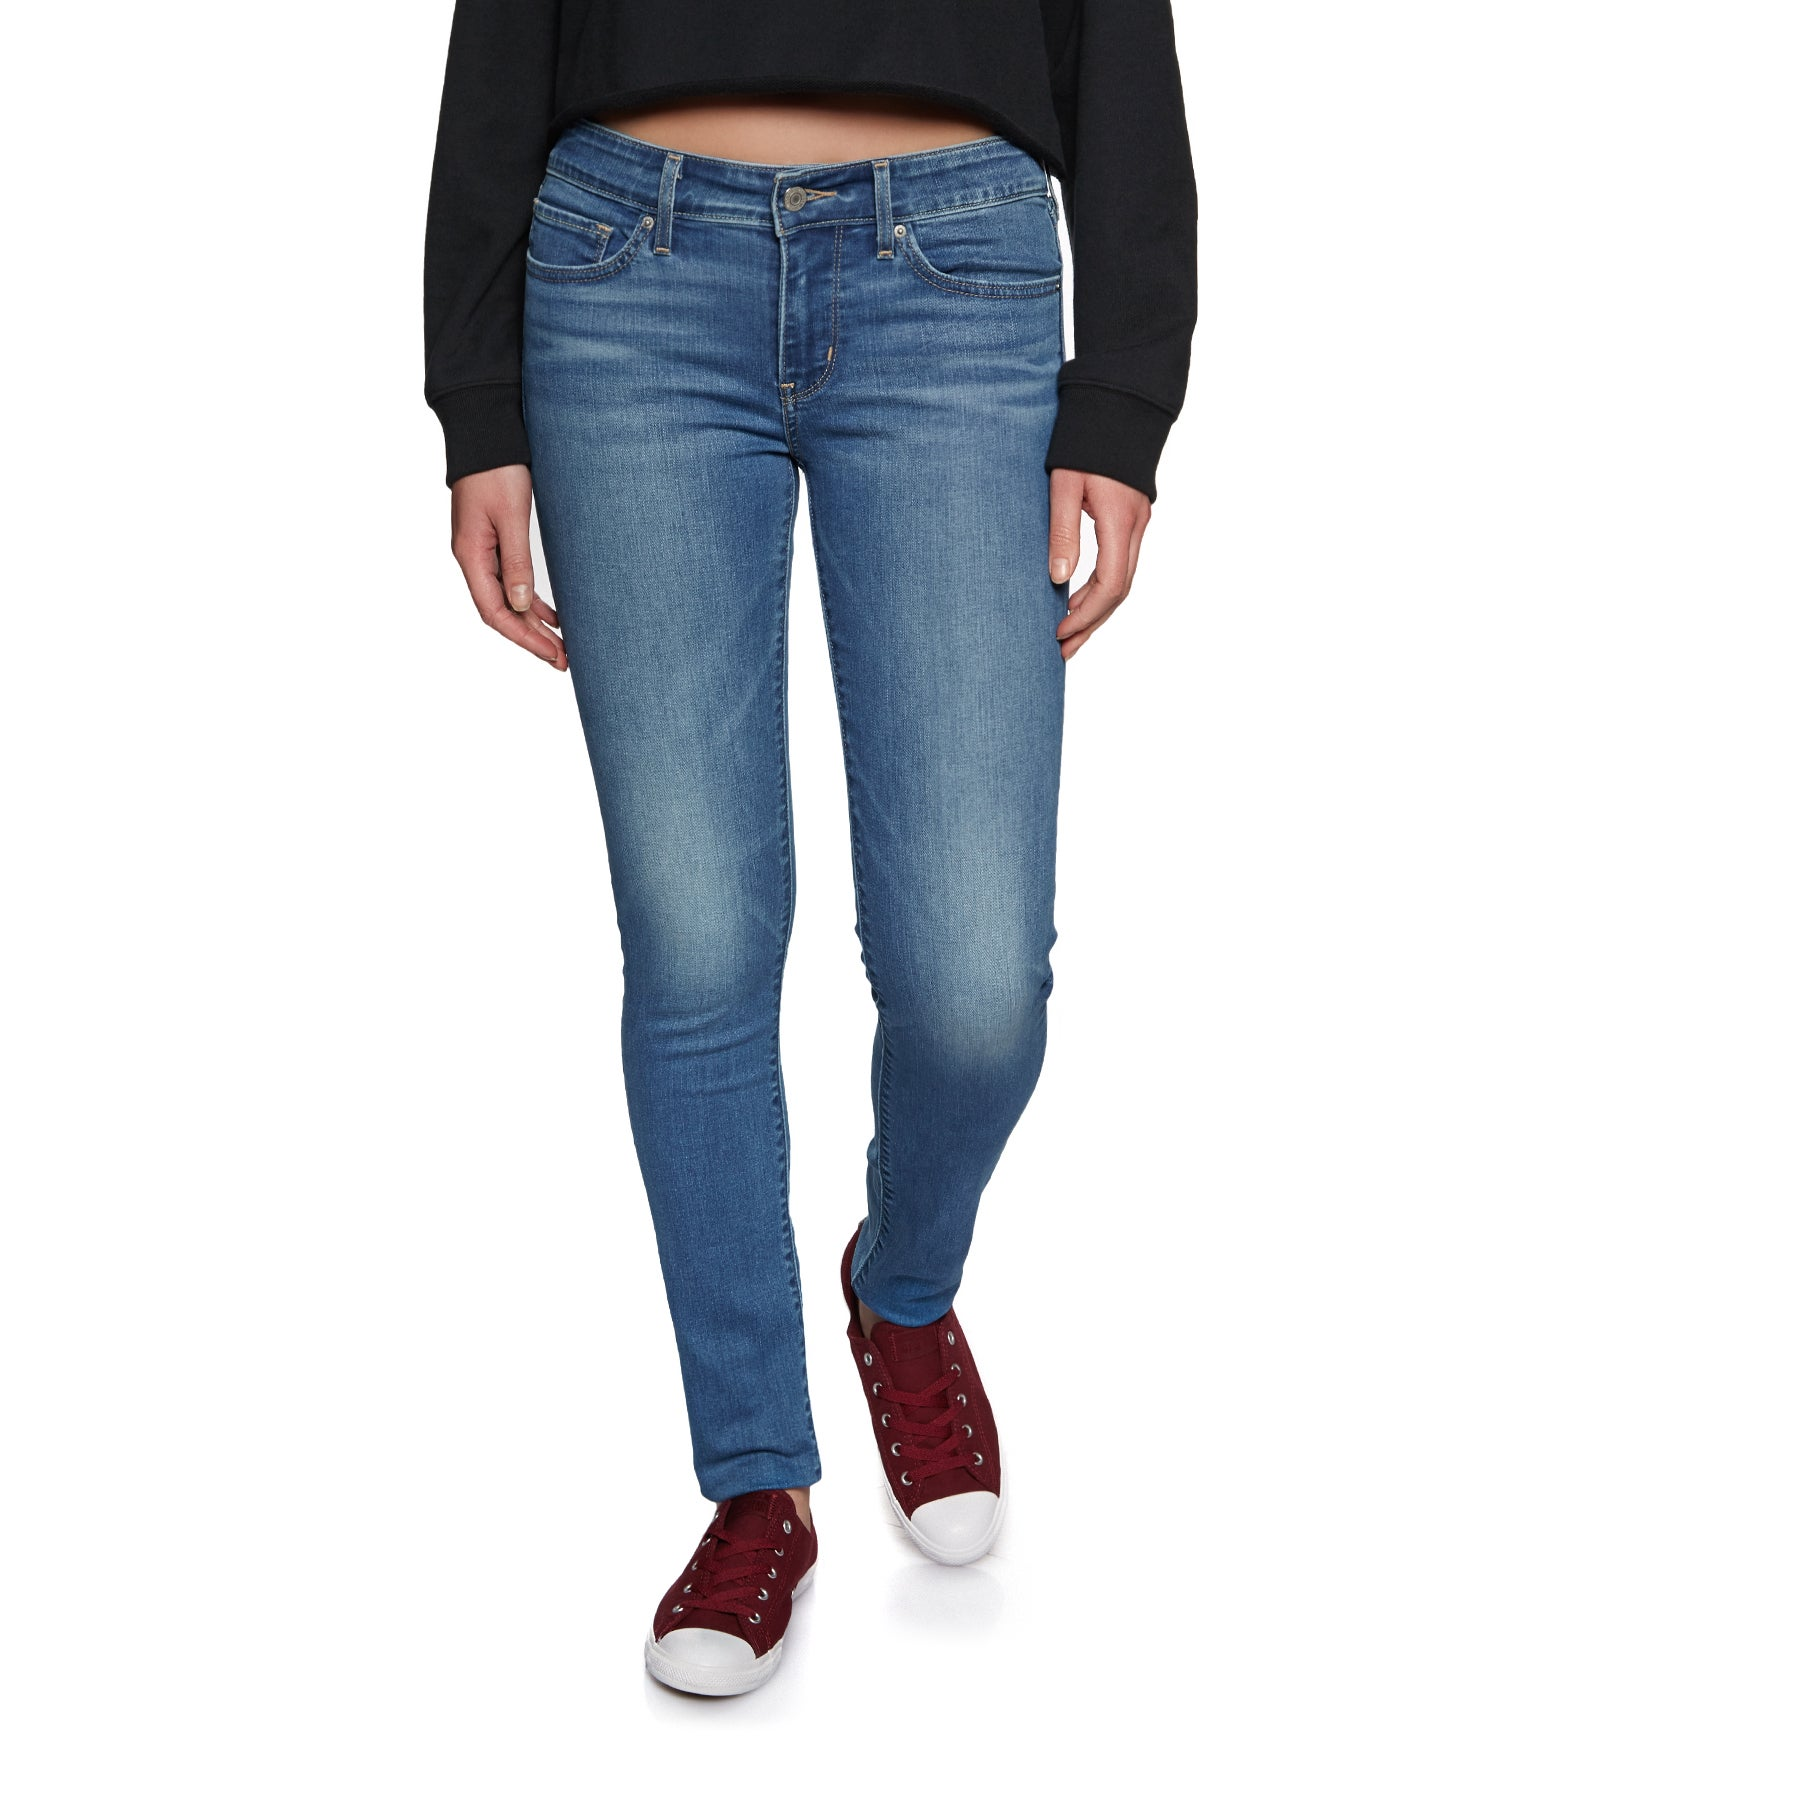 Jeans Femme Levis 711 Skinny - All Play